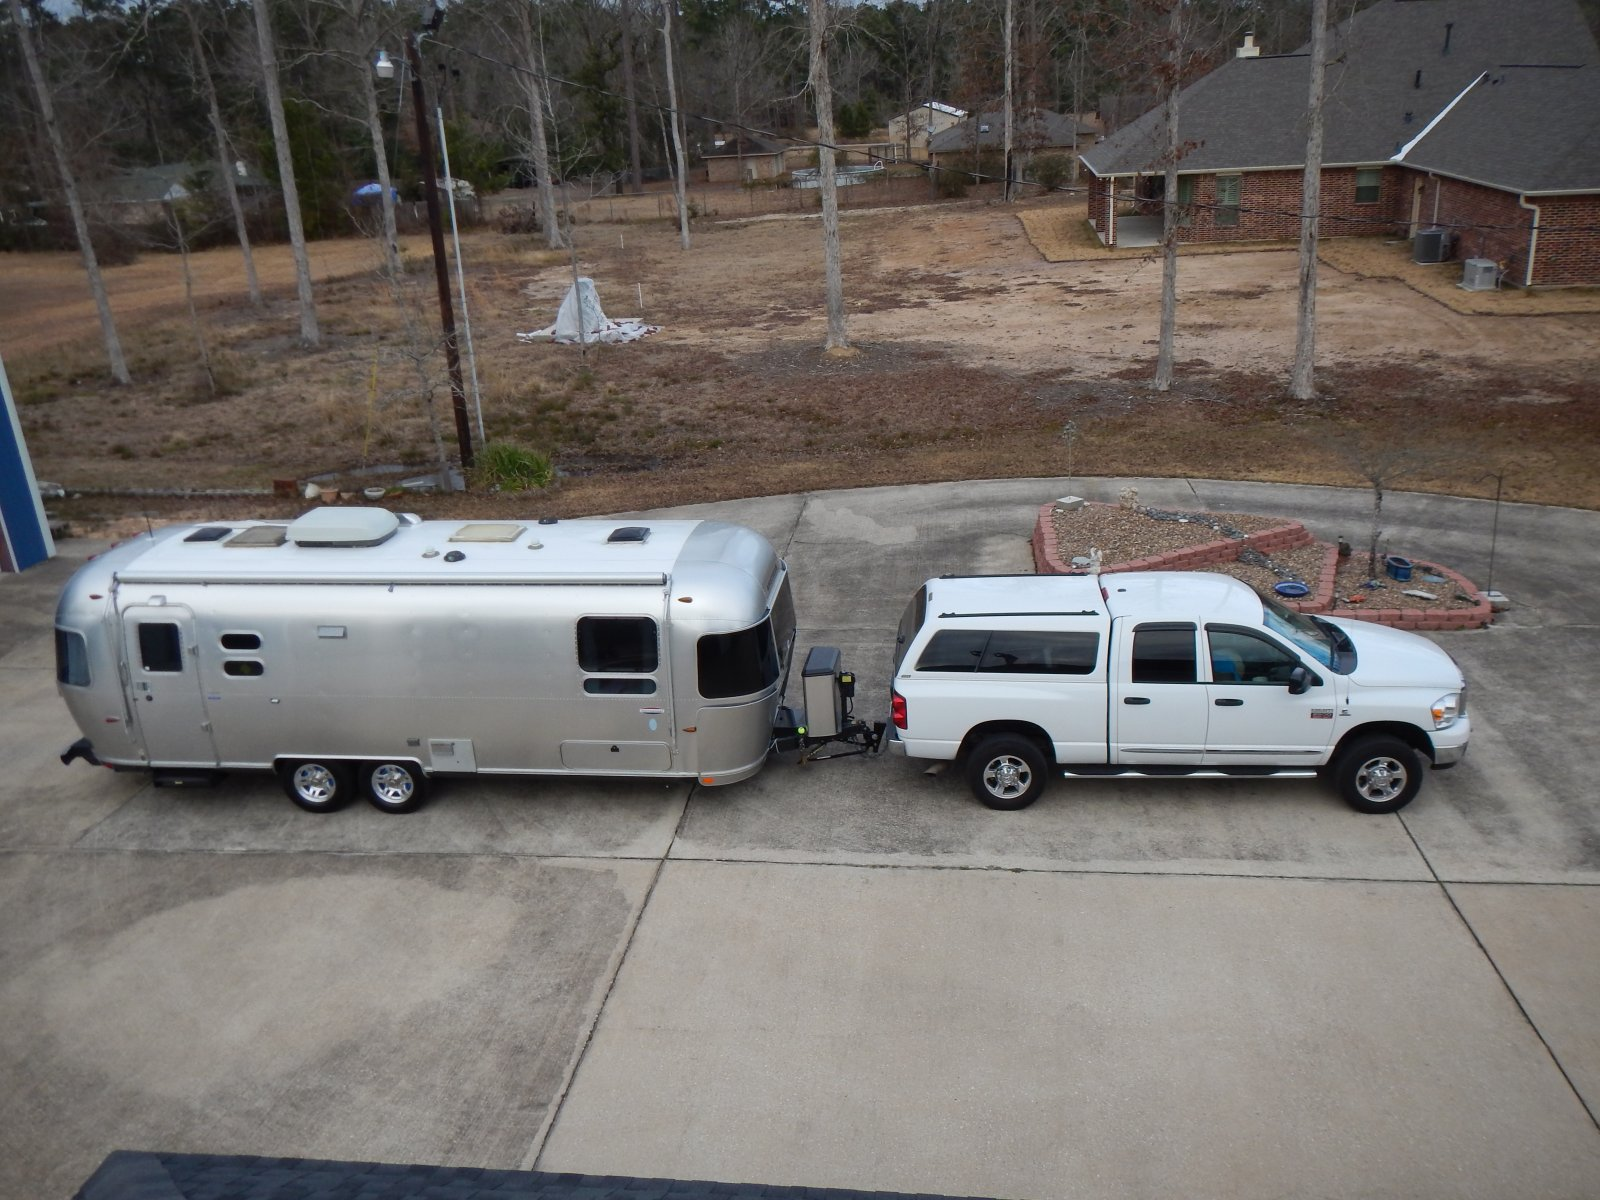 Click image for larger version  Name:Trailer Truck.jpg Views:67 Size:322.1 KB ID:237272